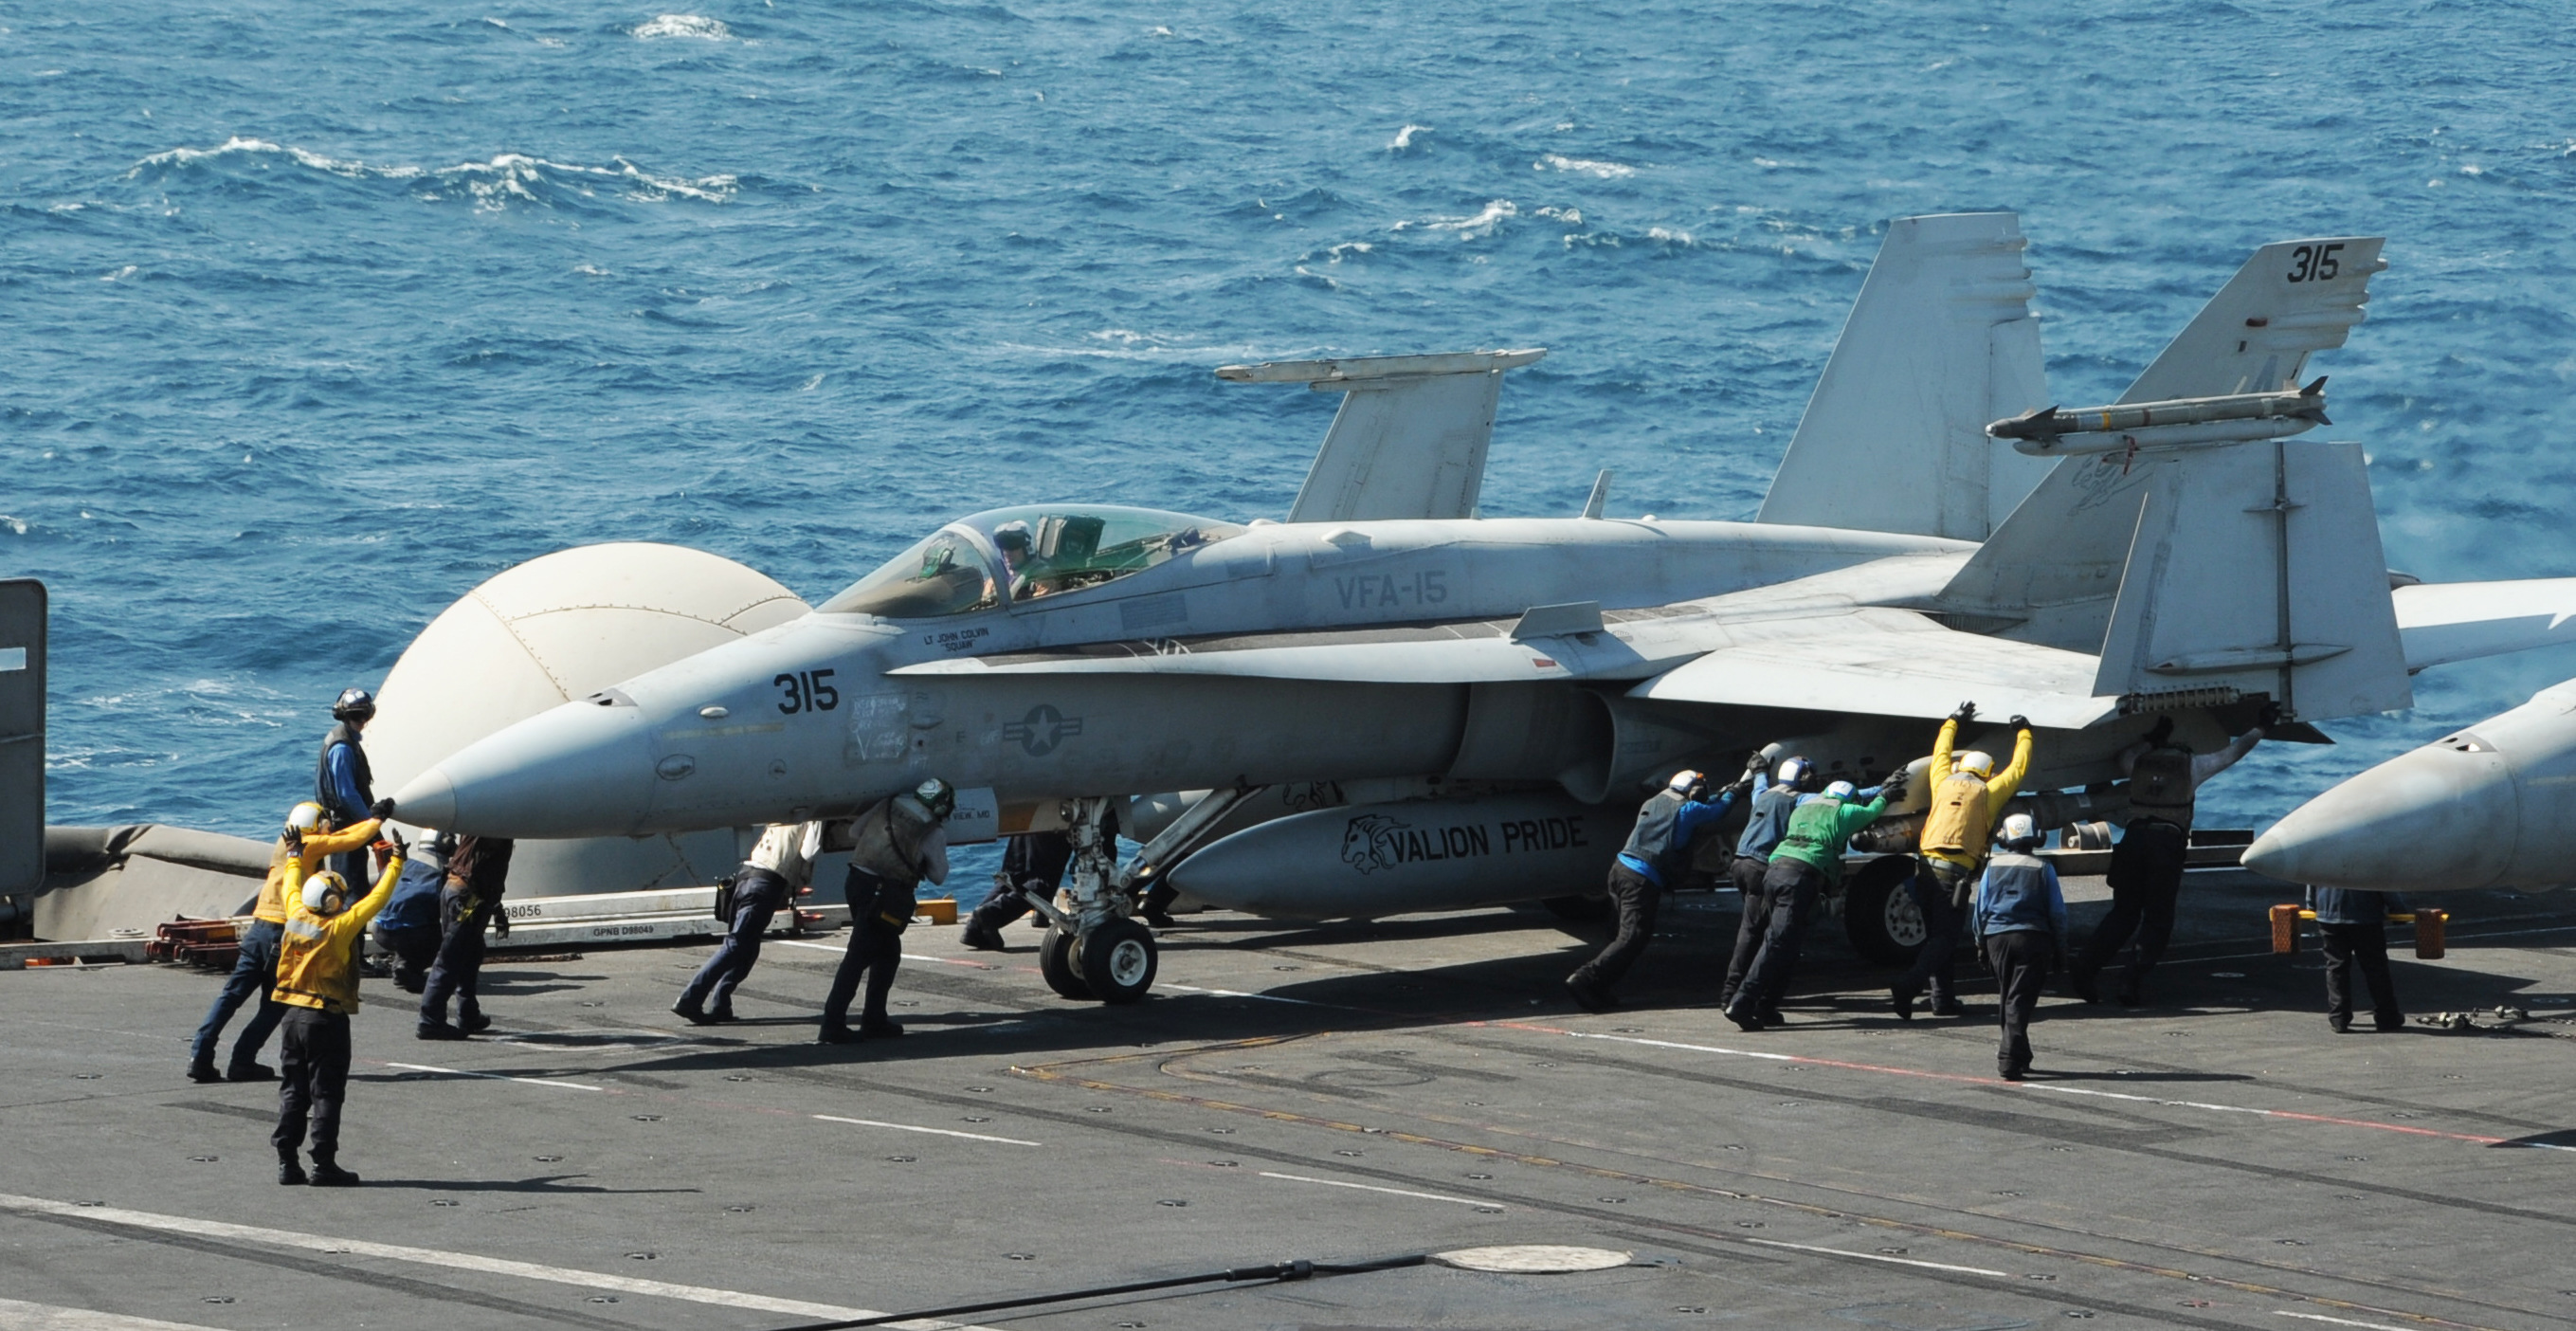 140808-N-MU440-073  ARABIAN GULF (Aug. 8, 2014) Sailors guide an F/A-18C Hornet assigned to the Valions of Strike Fighter Squadron (VFA) 15 on the flight deck of the aircraft carrier USS George H.W. Bush (CVN 77). George H.W. Bush is supporting maritime security operations and theater security cooperation efforts in the U.S. 5th Fleet area of responsibility. (U.S. Navy photo by Mass Communication Specialist 3rd Class Lorelei Vander Griend/Released)